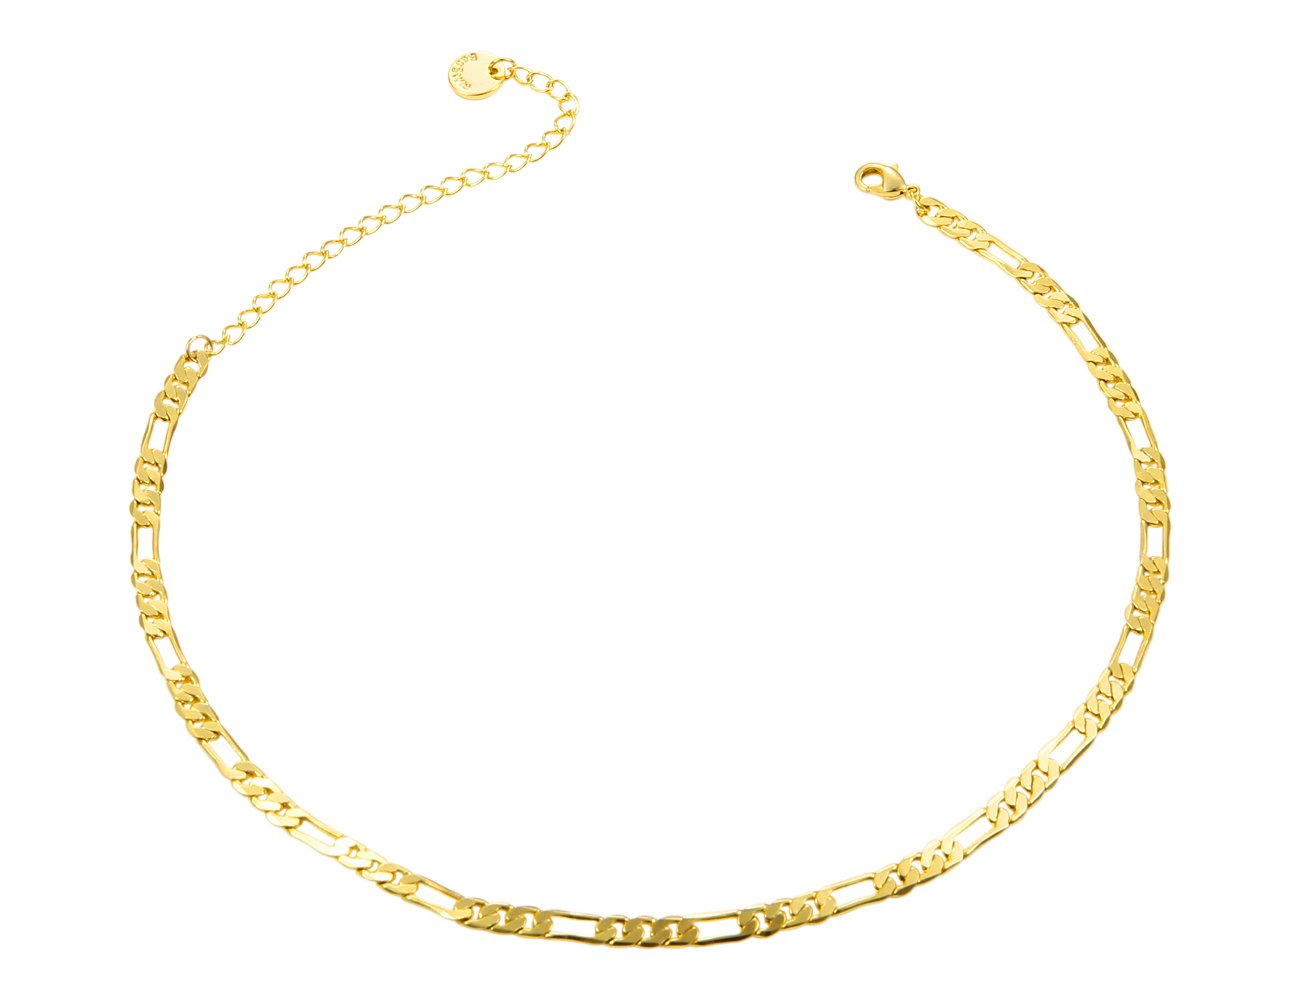 Figaro Chain 4MM, 24K Gold Plated with Inlaid Bronze, Premium Fashion Jewelry, Necklace Made Thin For Charms